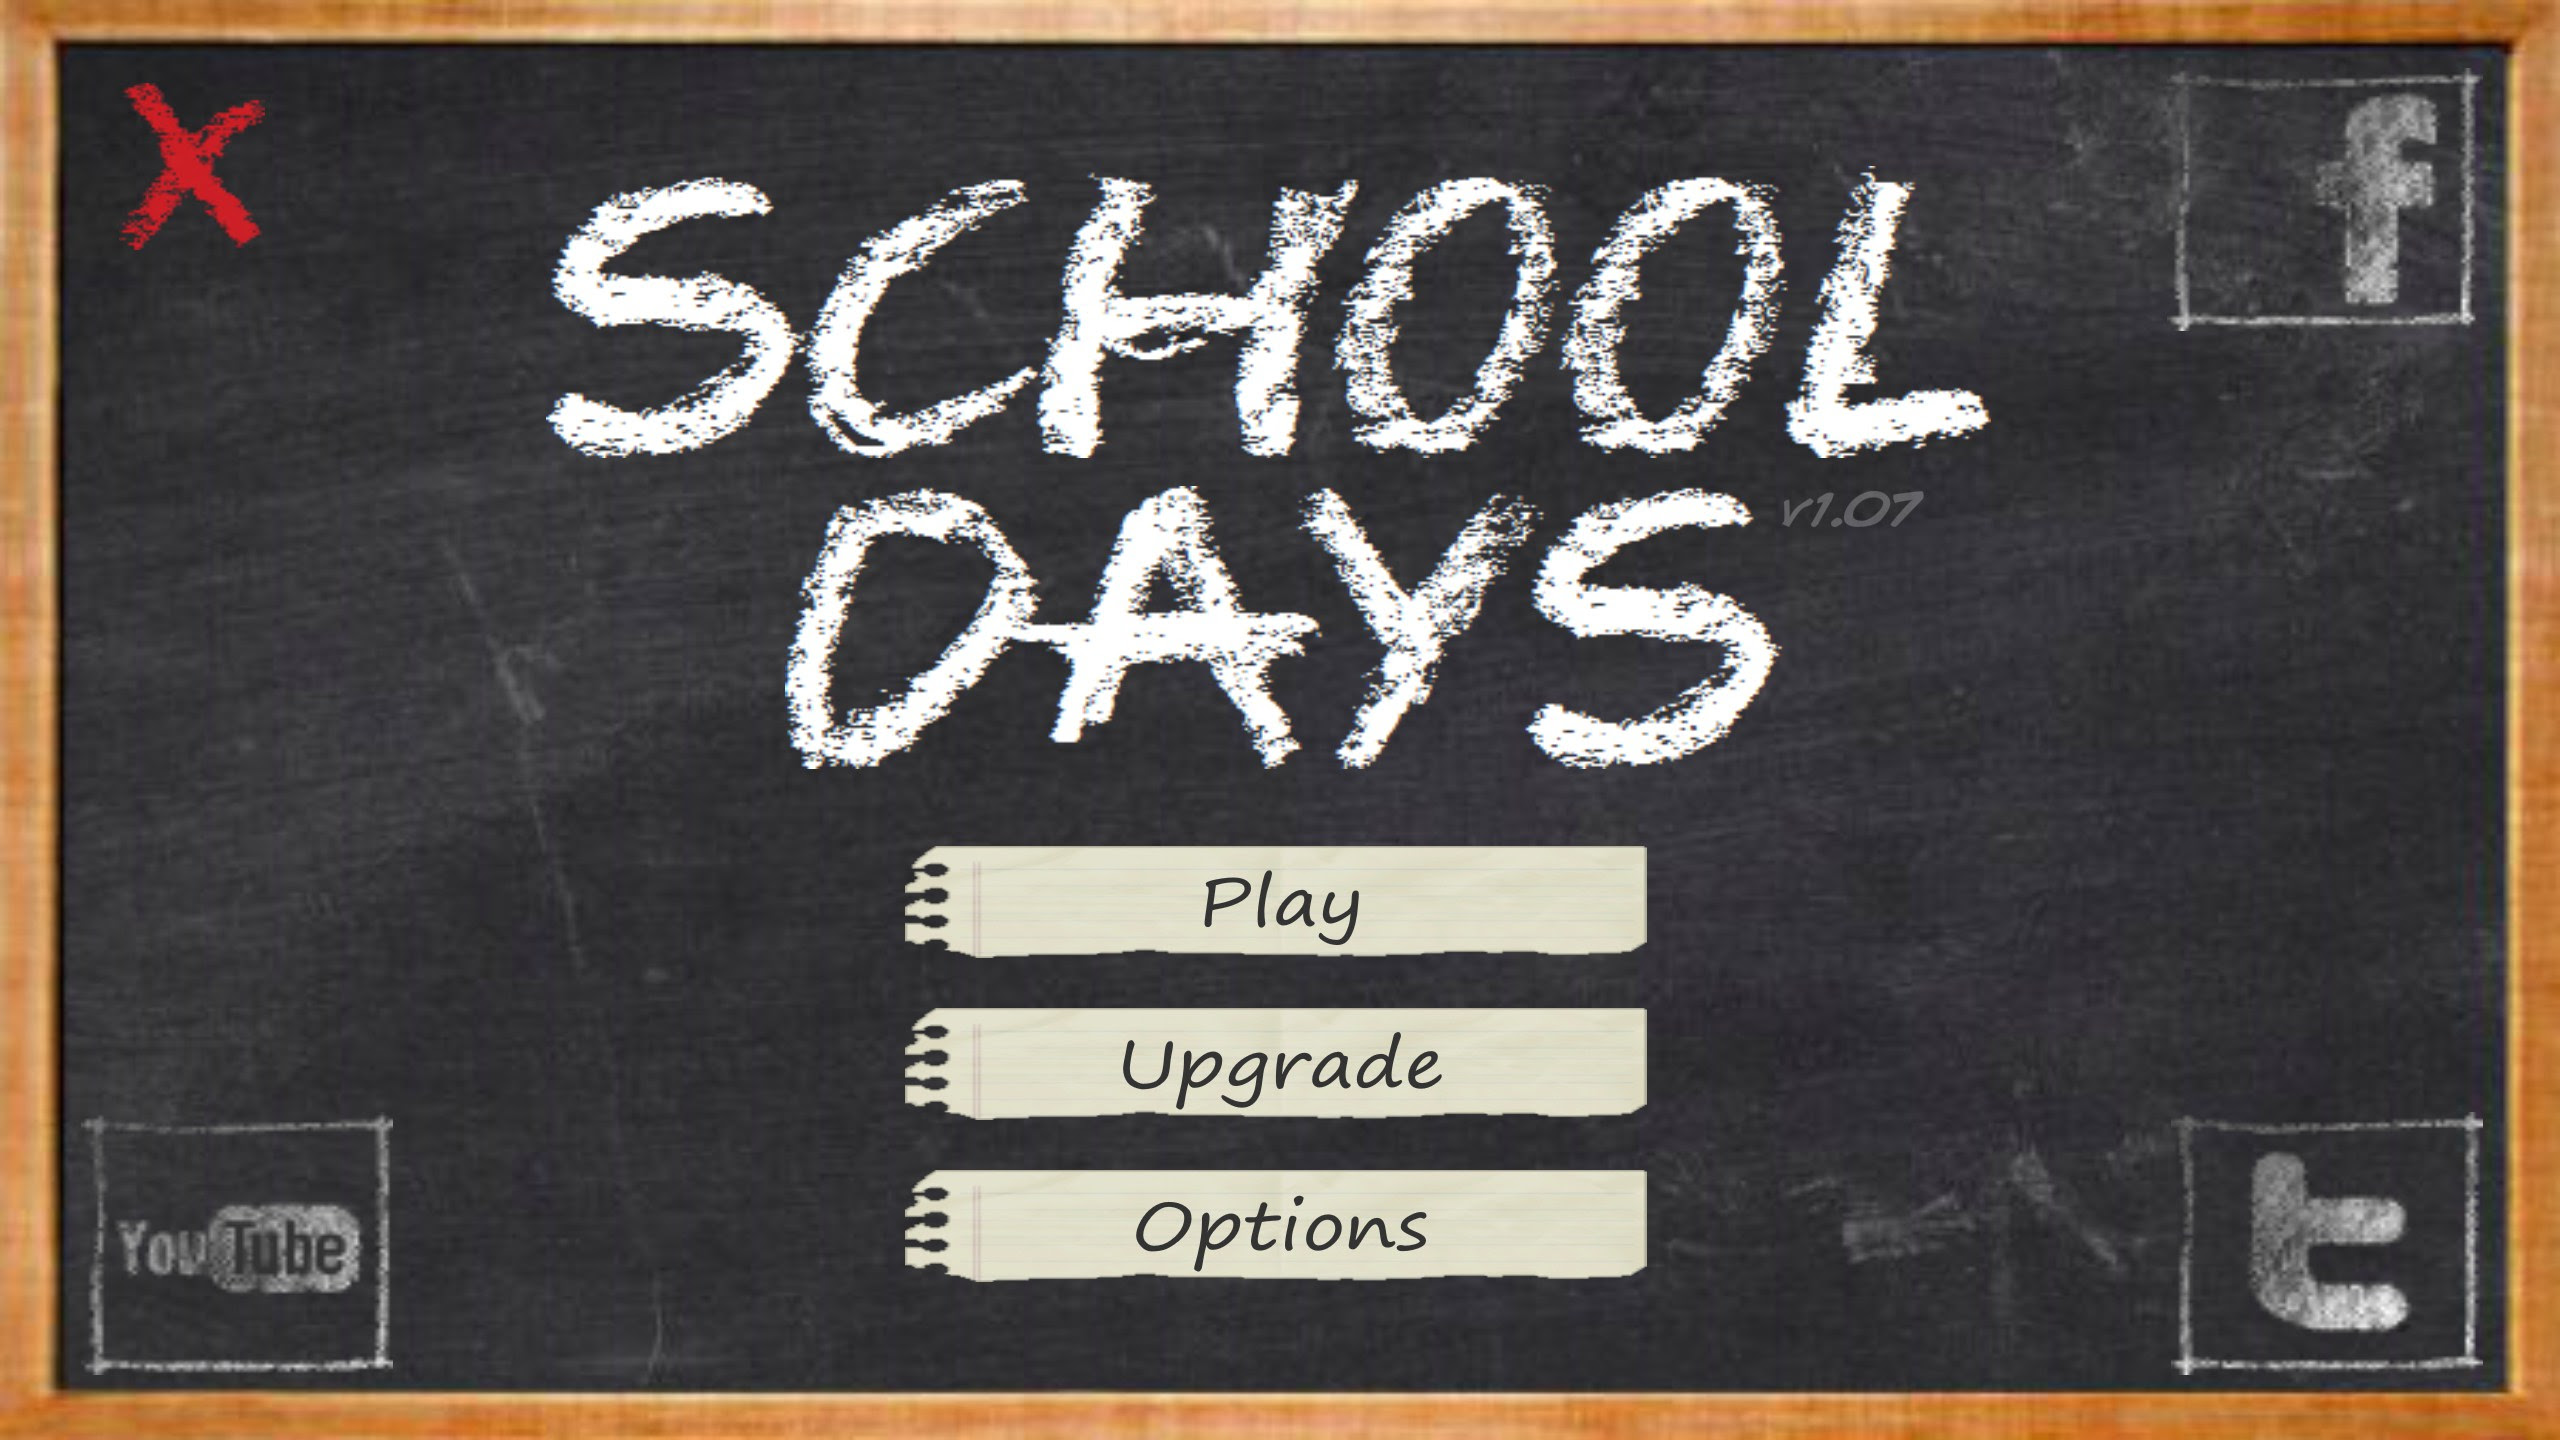 School Days – Games for Android – Free download. School